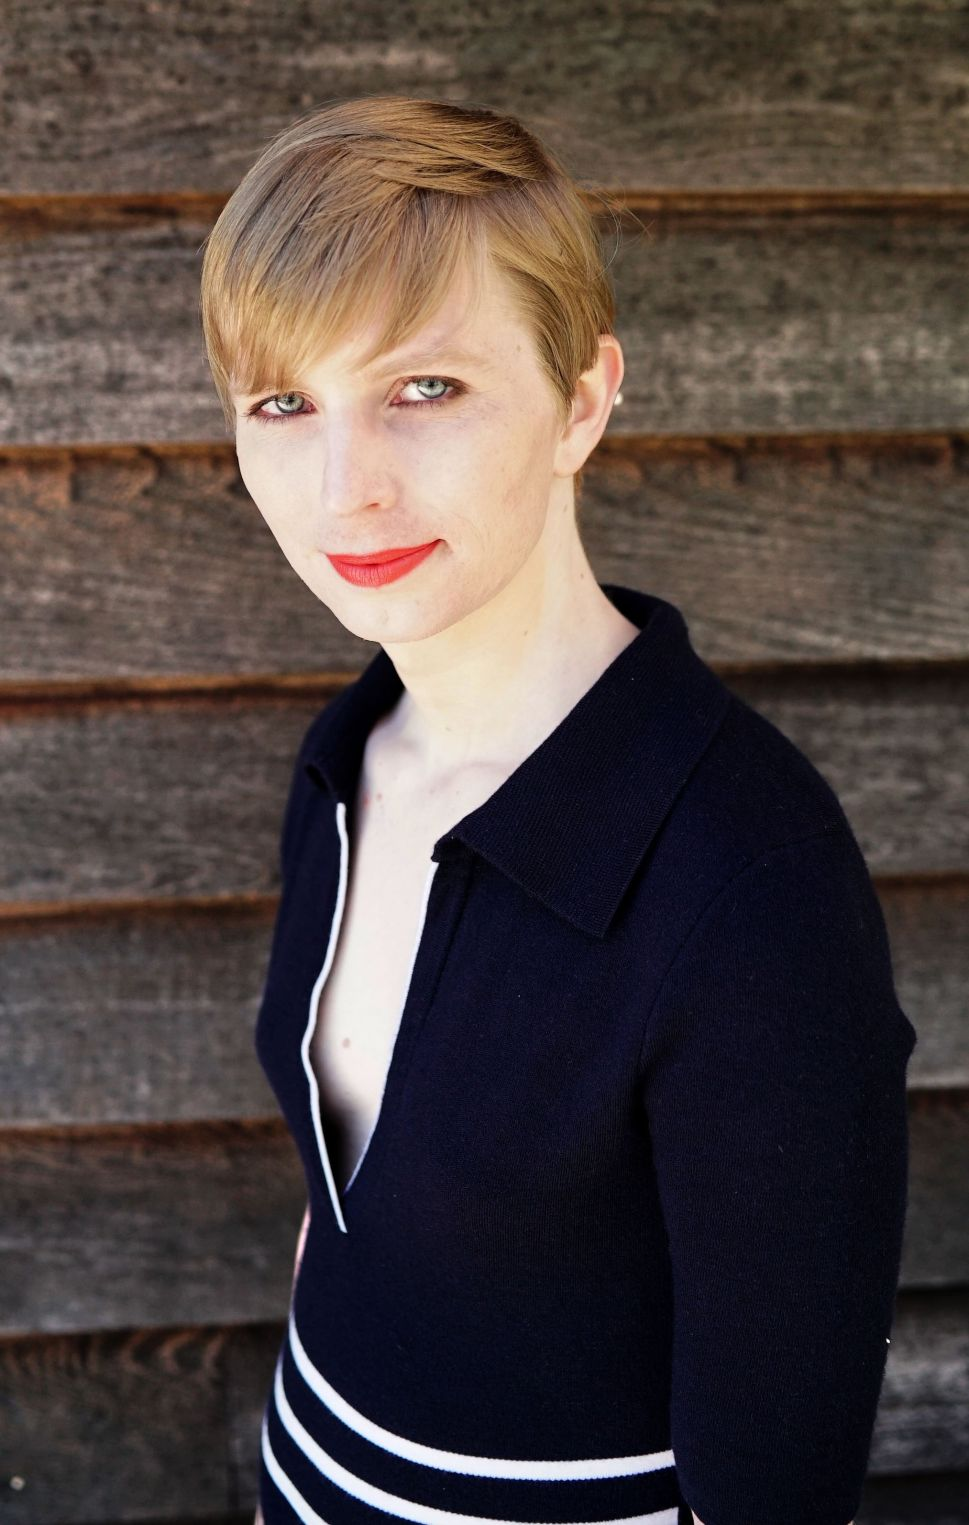 Harvard's Bizarre Chelsea Manning Debacle Exposes Academic Bubble